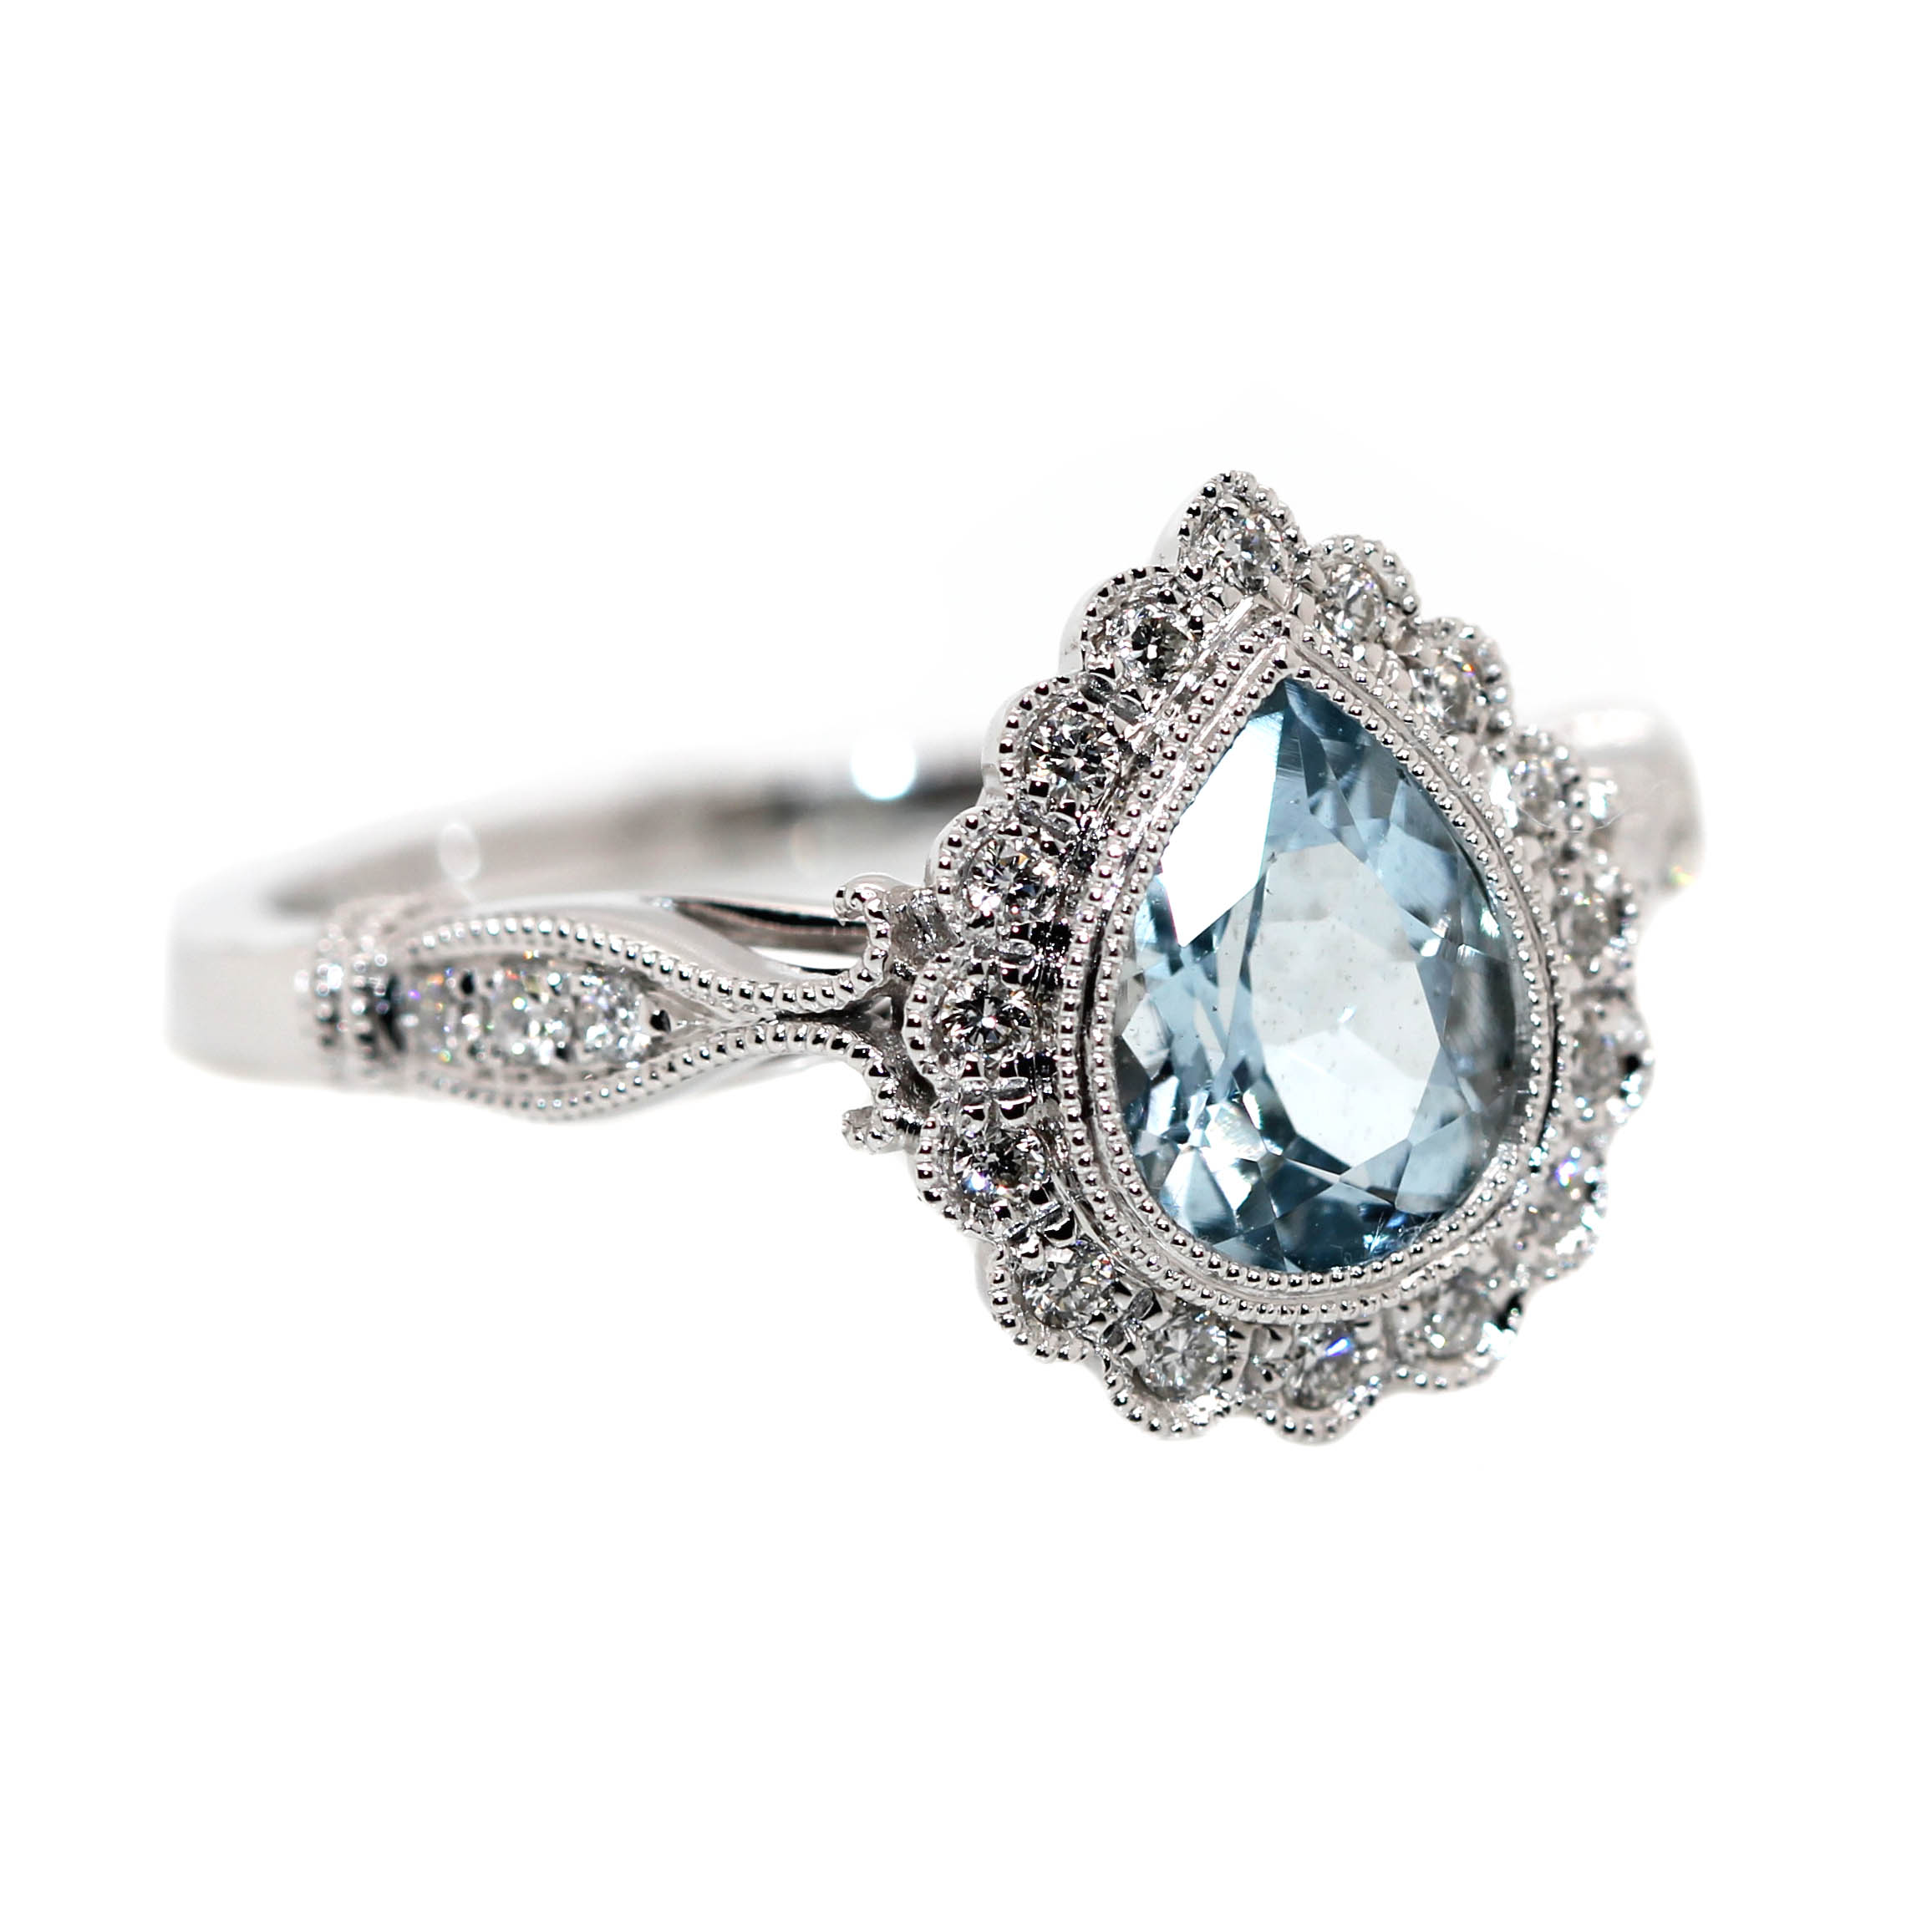 9ct White Gold, 1.01ct Aquamarine & .18ct of Diamonds.